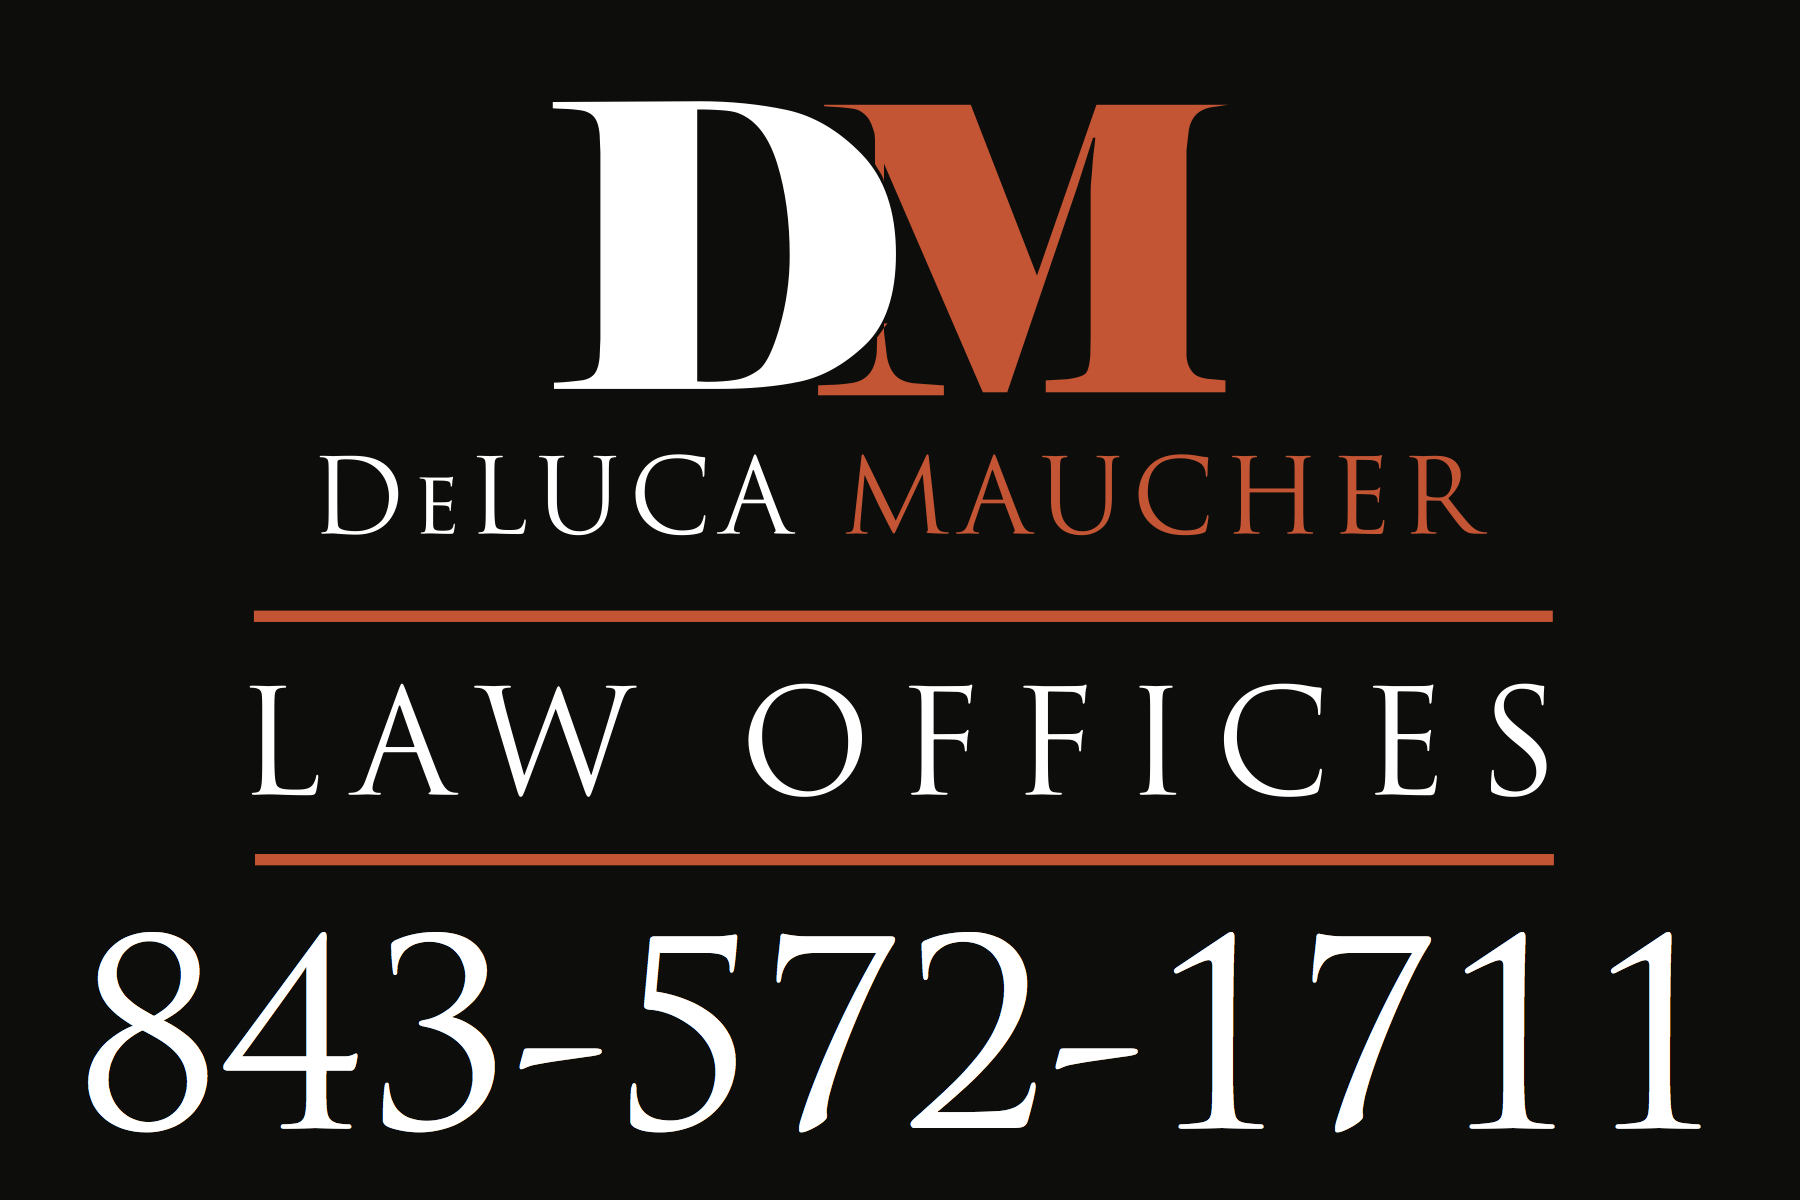 The Law Offices of Deluca & Maucher